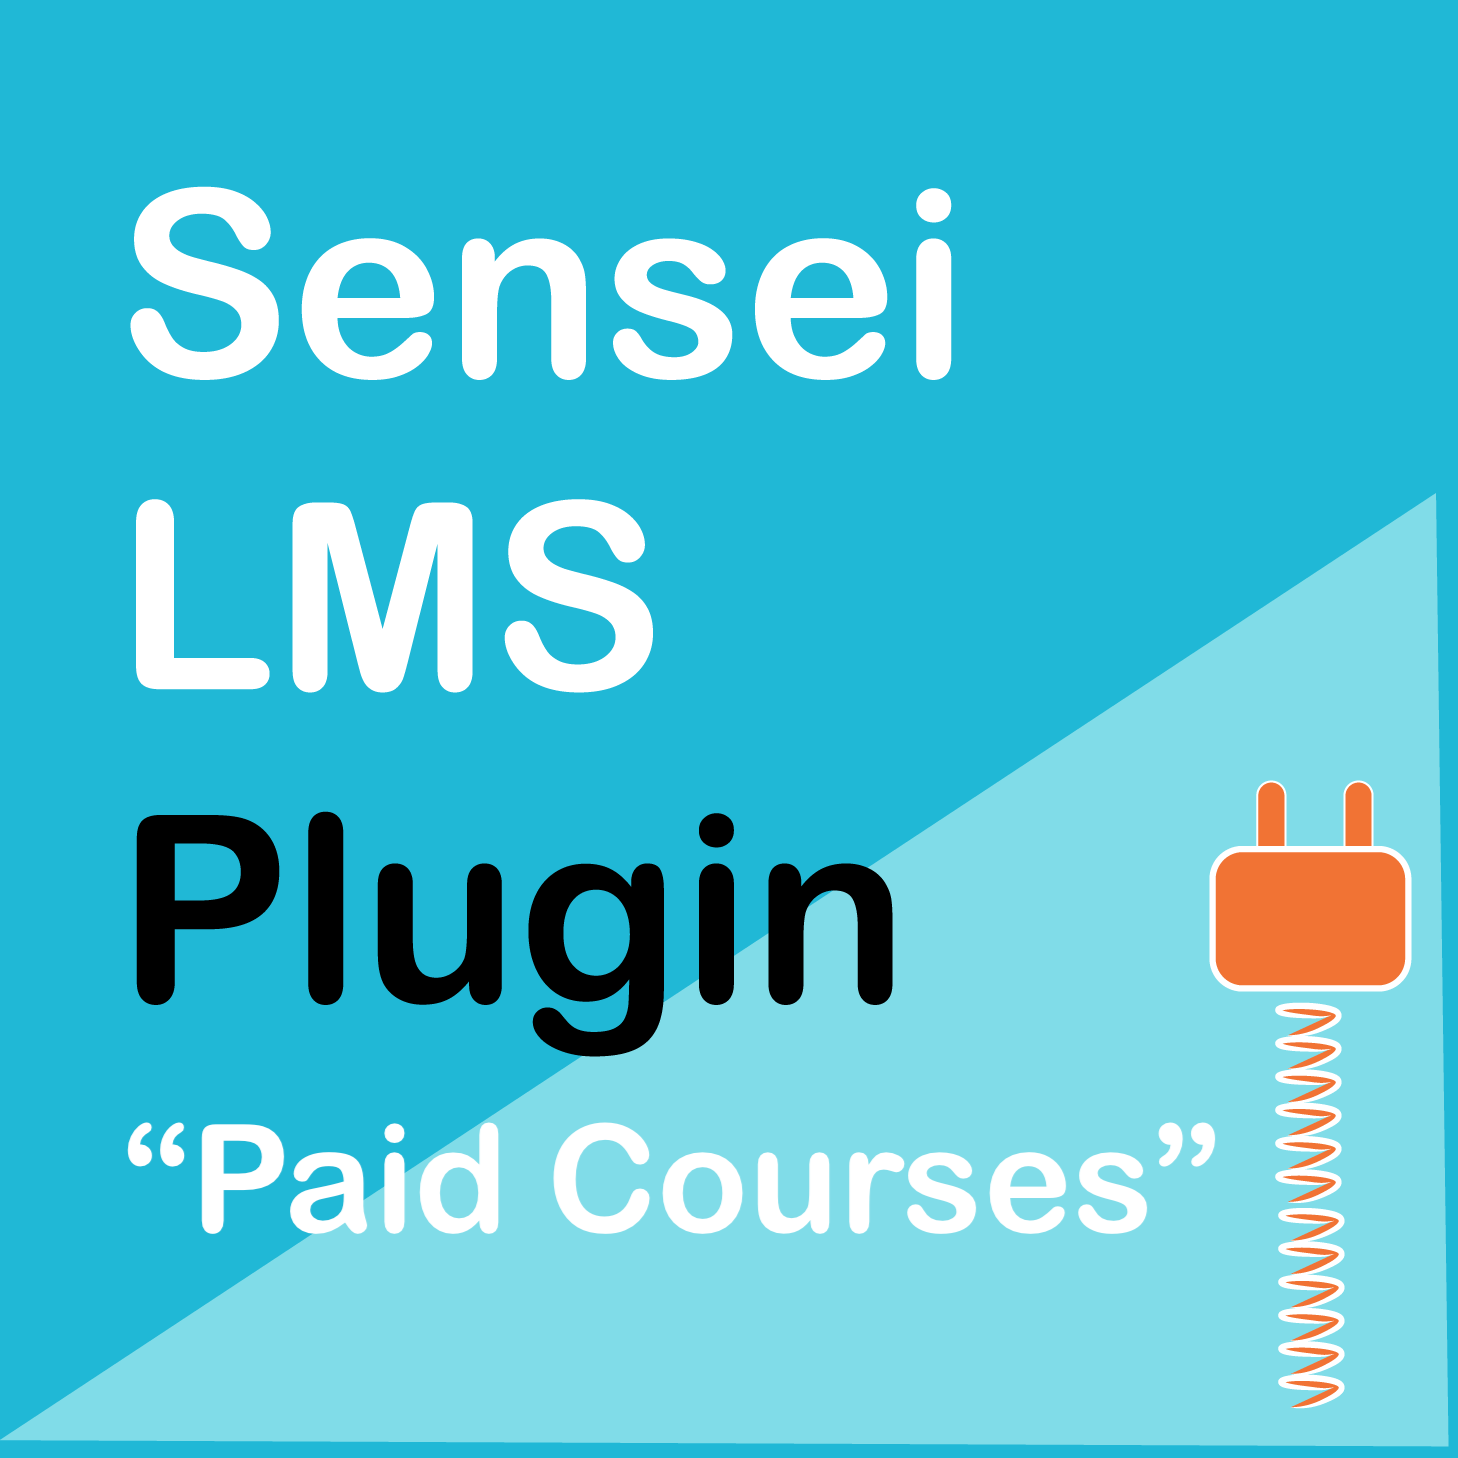 WooCommerce-Paid-Courses-Sensei-LMS-Plugin